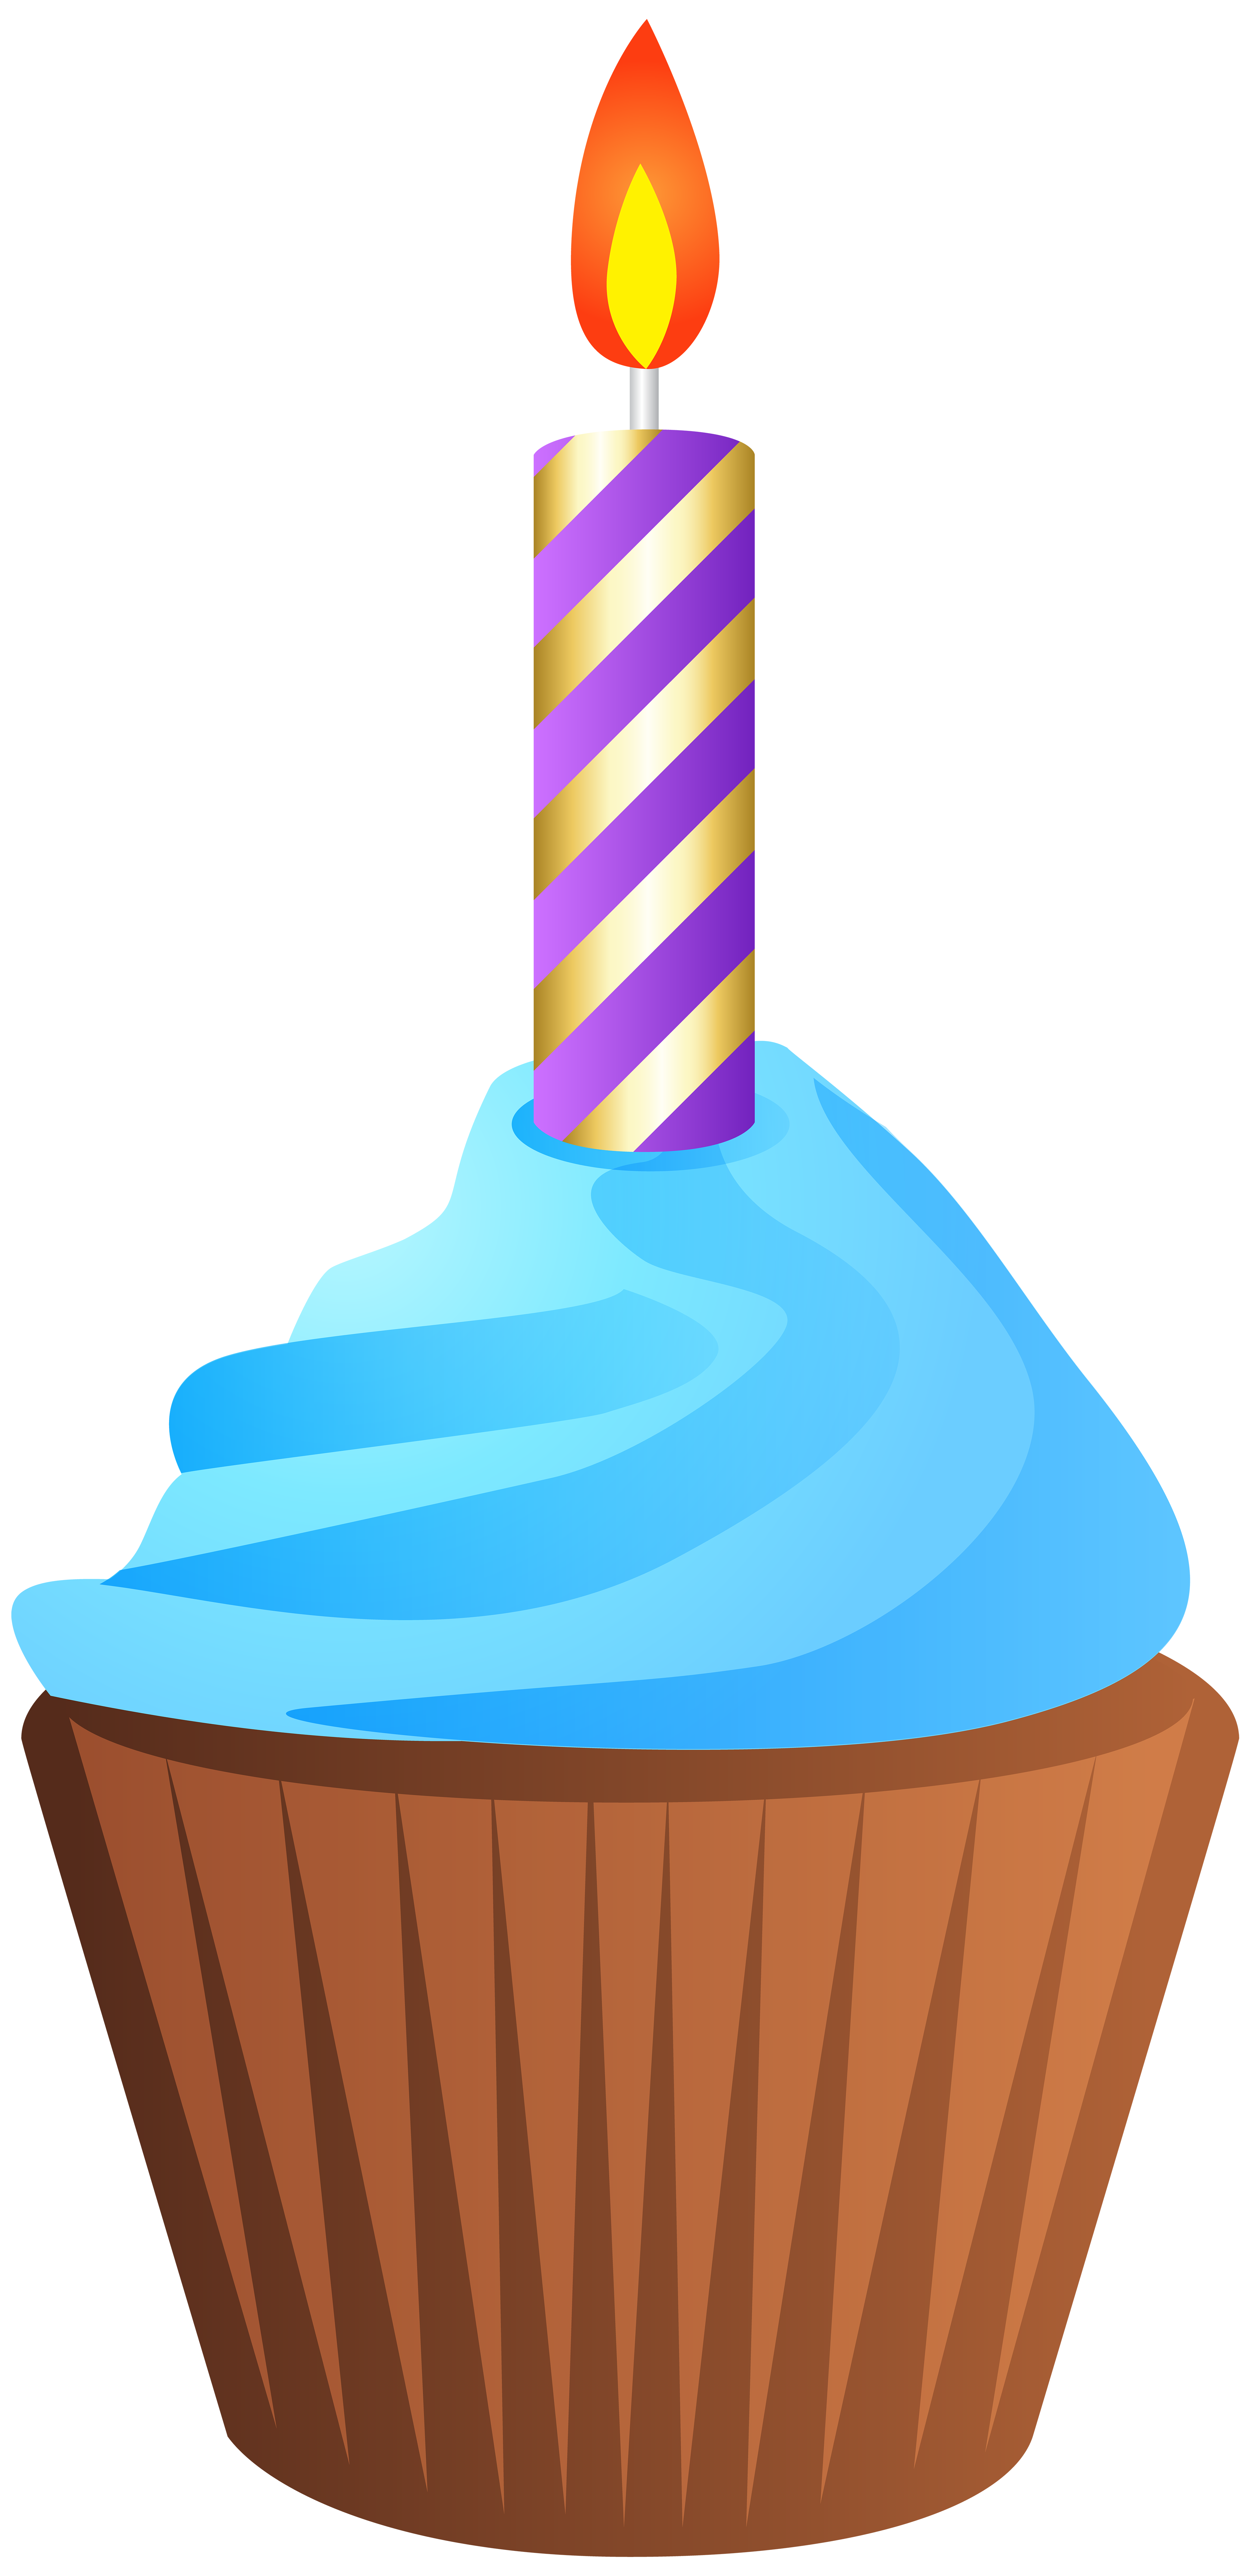 Muffins clipart bran muffin. Birthday with candle transparent